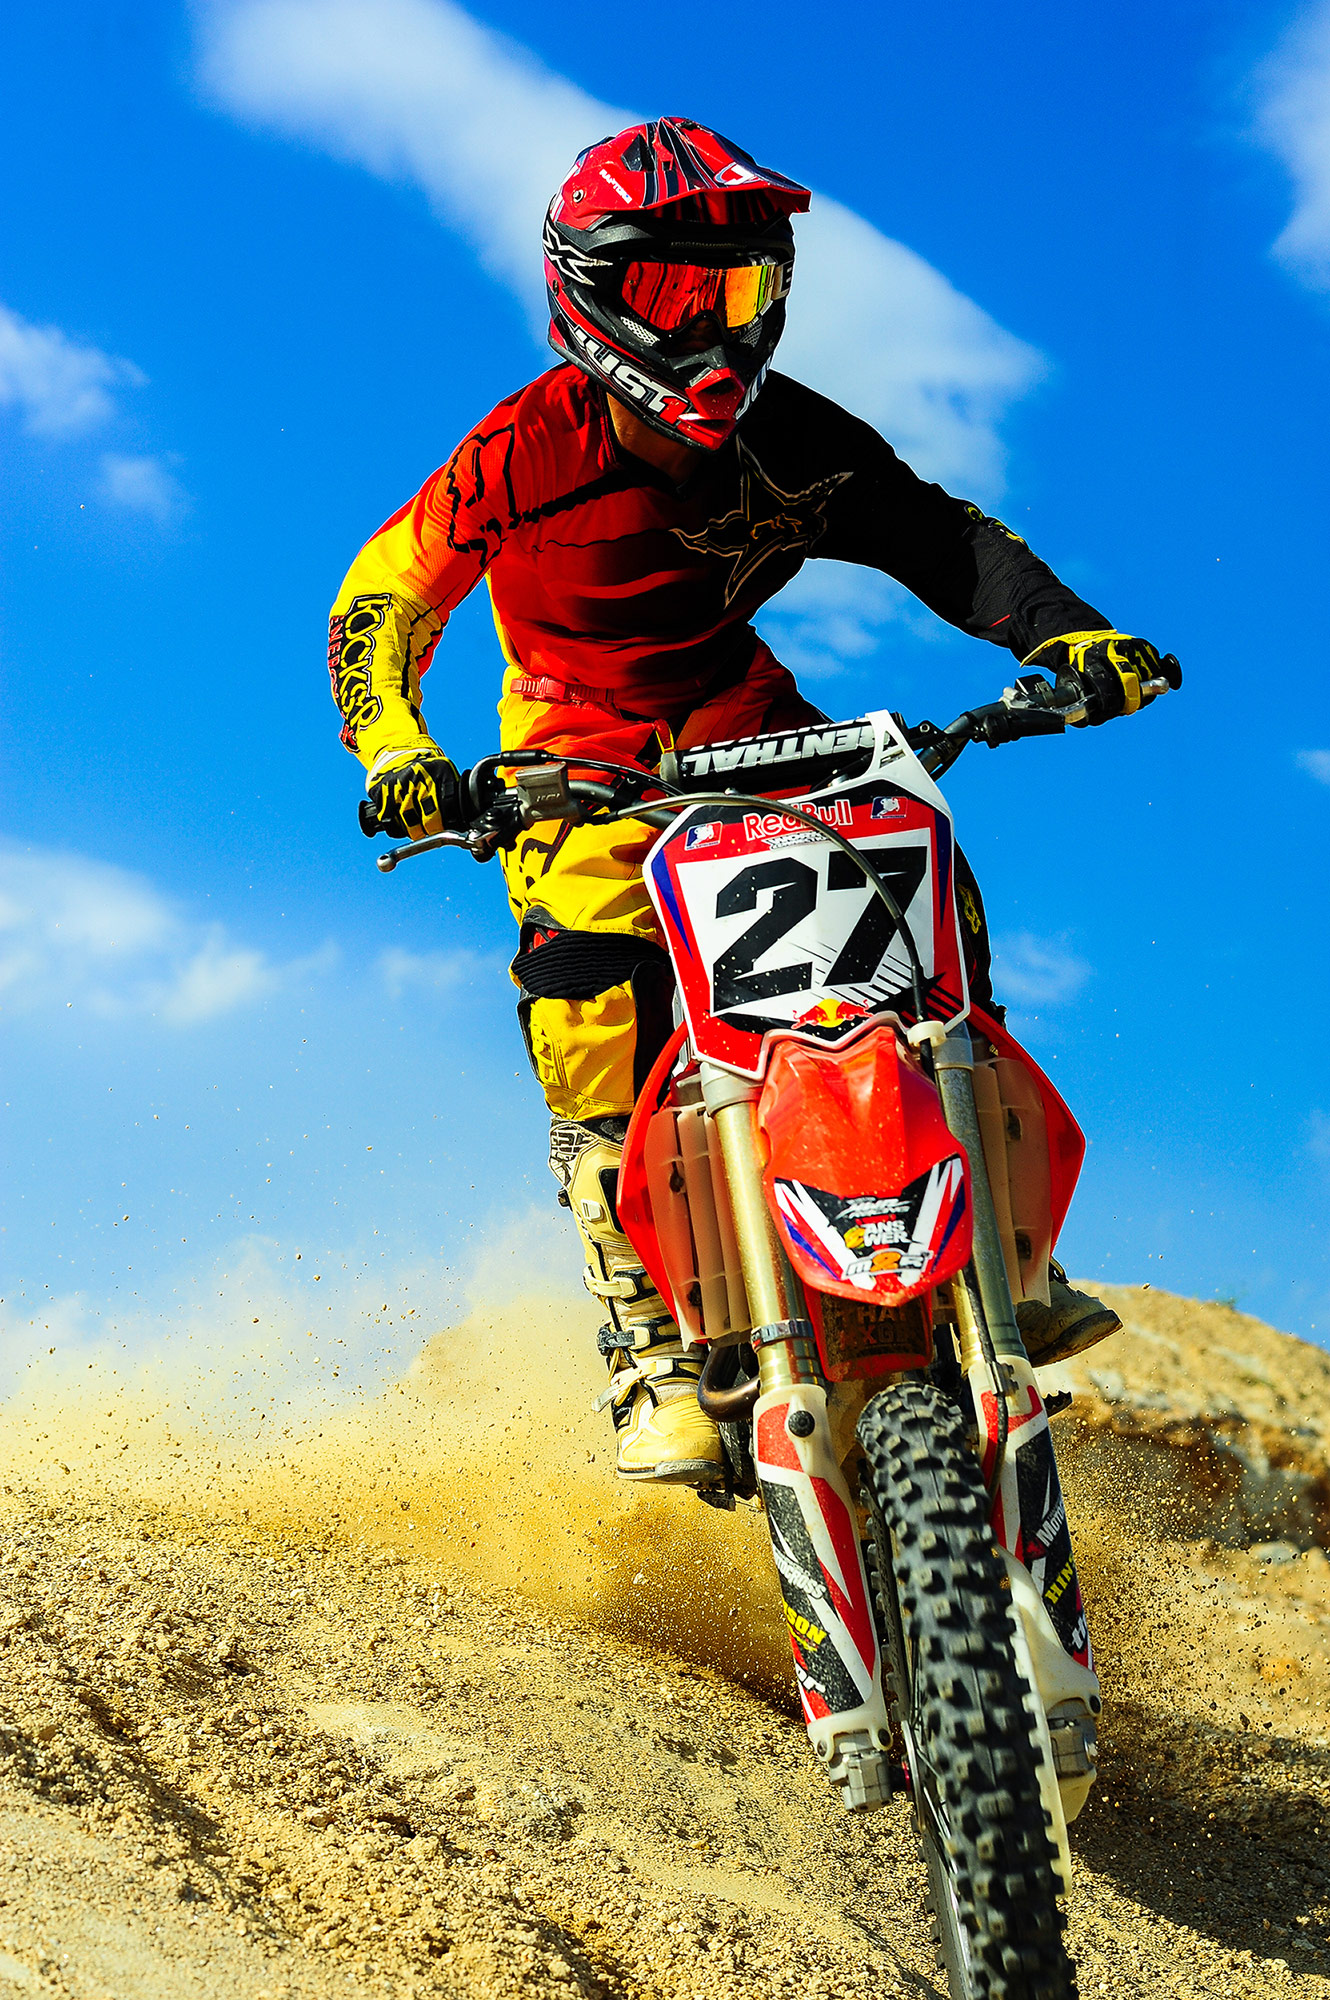 The Cross Hd Wallpaper Man In Blue Motorcycle Suit Riding On Yellow Dirt